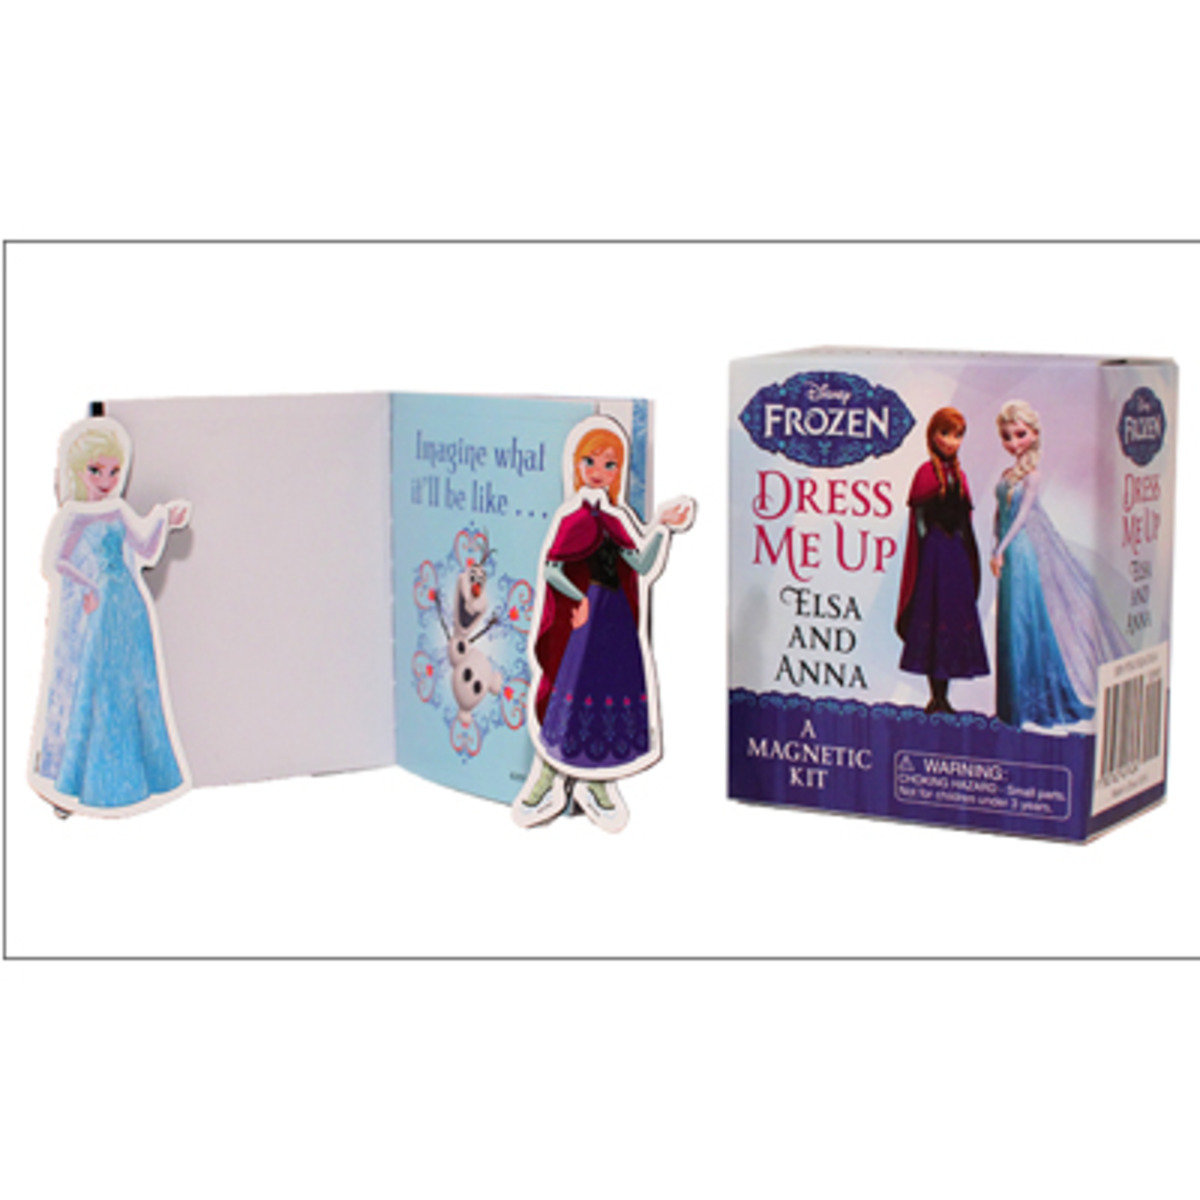 Frozen: Dress Me Up Elsa and Anna : A Magnetic Kit 978076245743